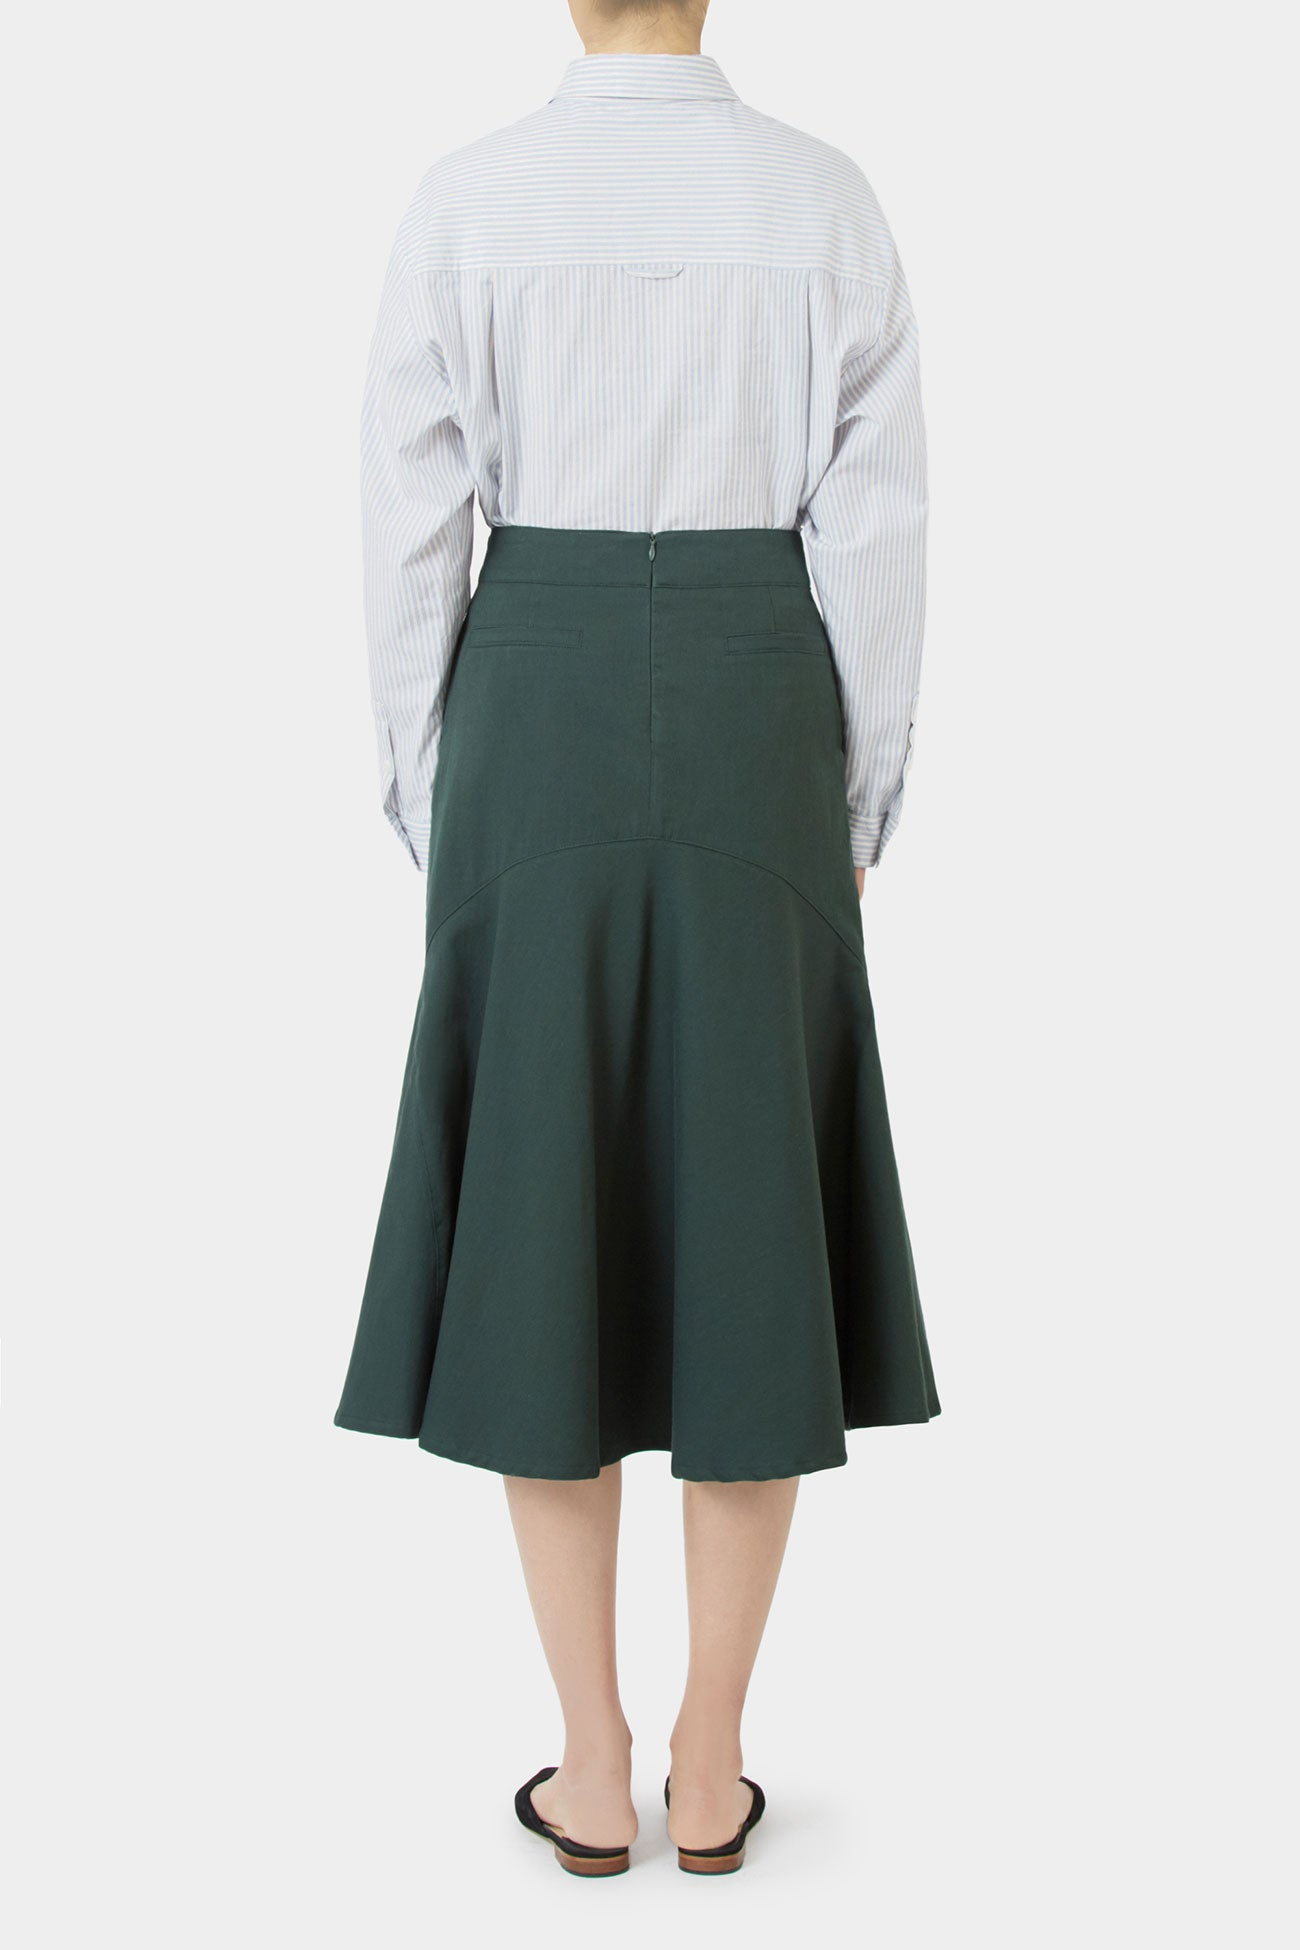 PINE TAY COTTON FLARE SKIRT